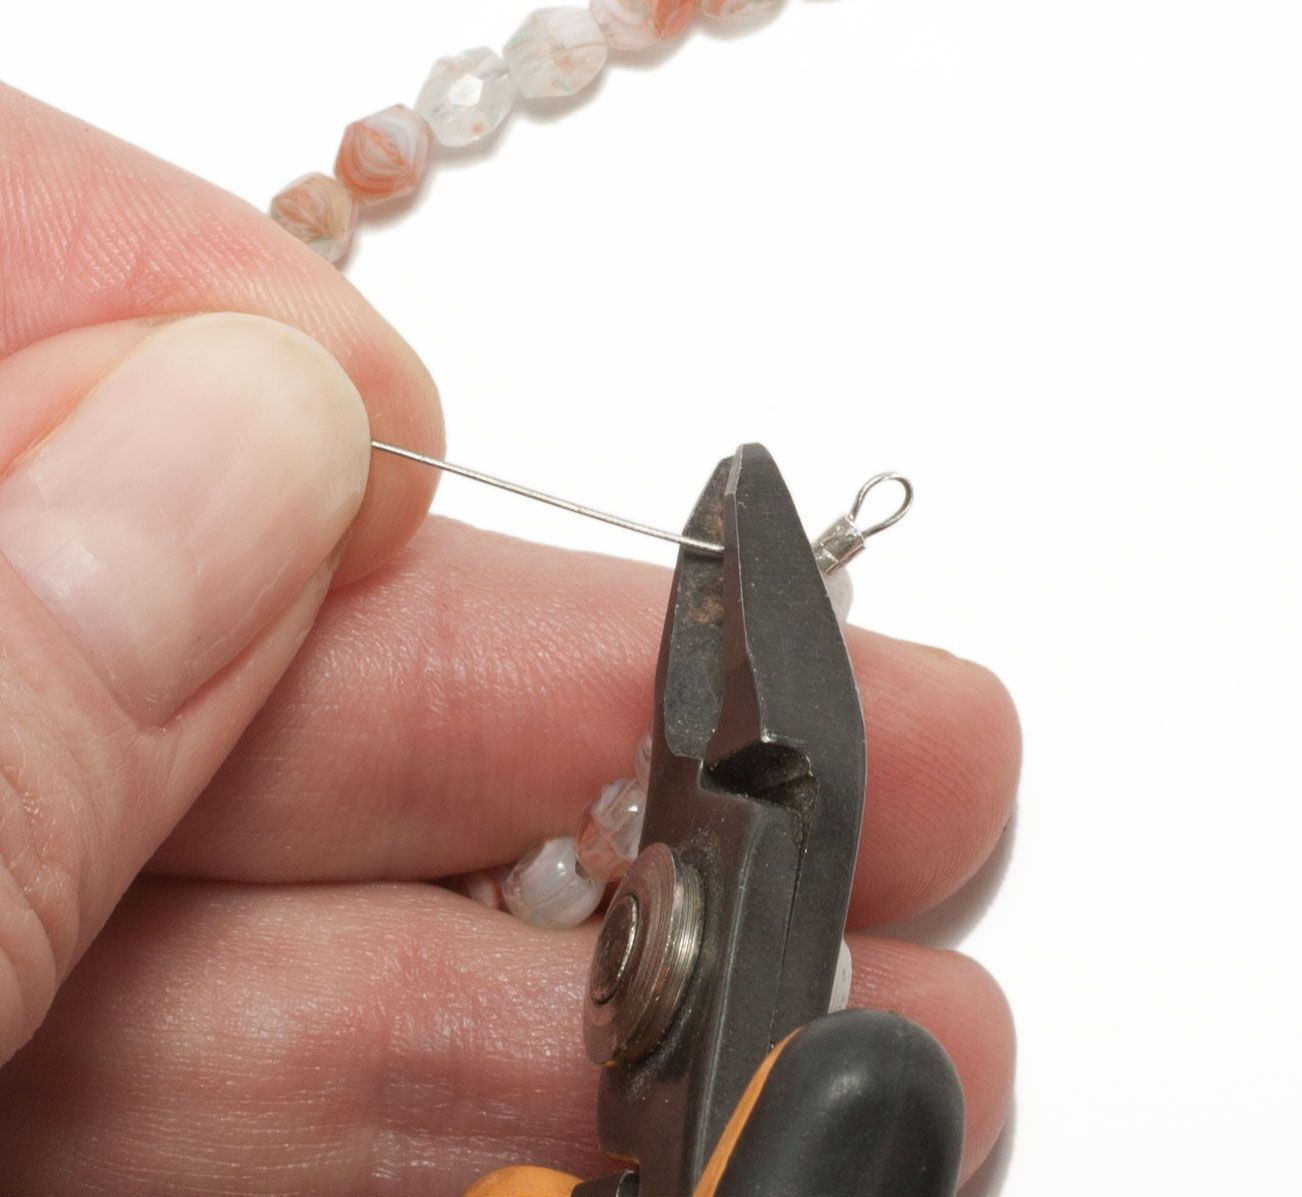 How To String Beads With Beading Wire Thread Read Wiring Diagrams Hands Trimming A Tail